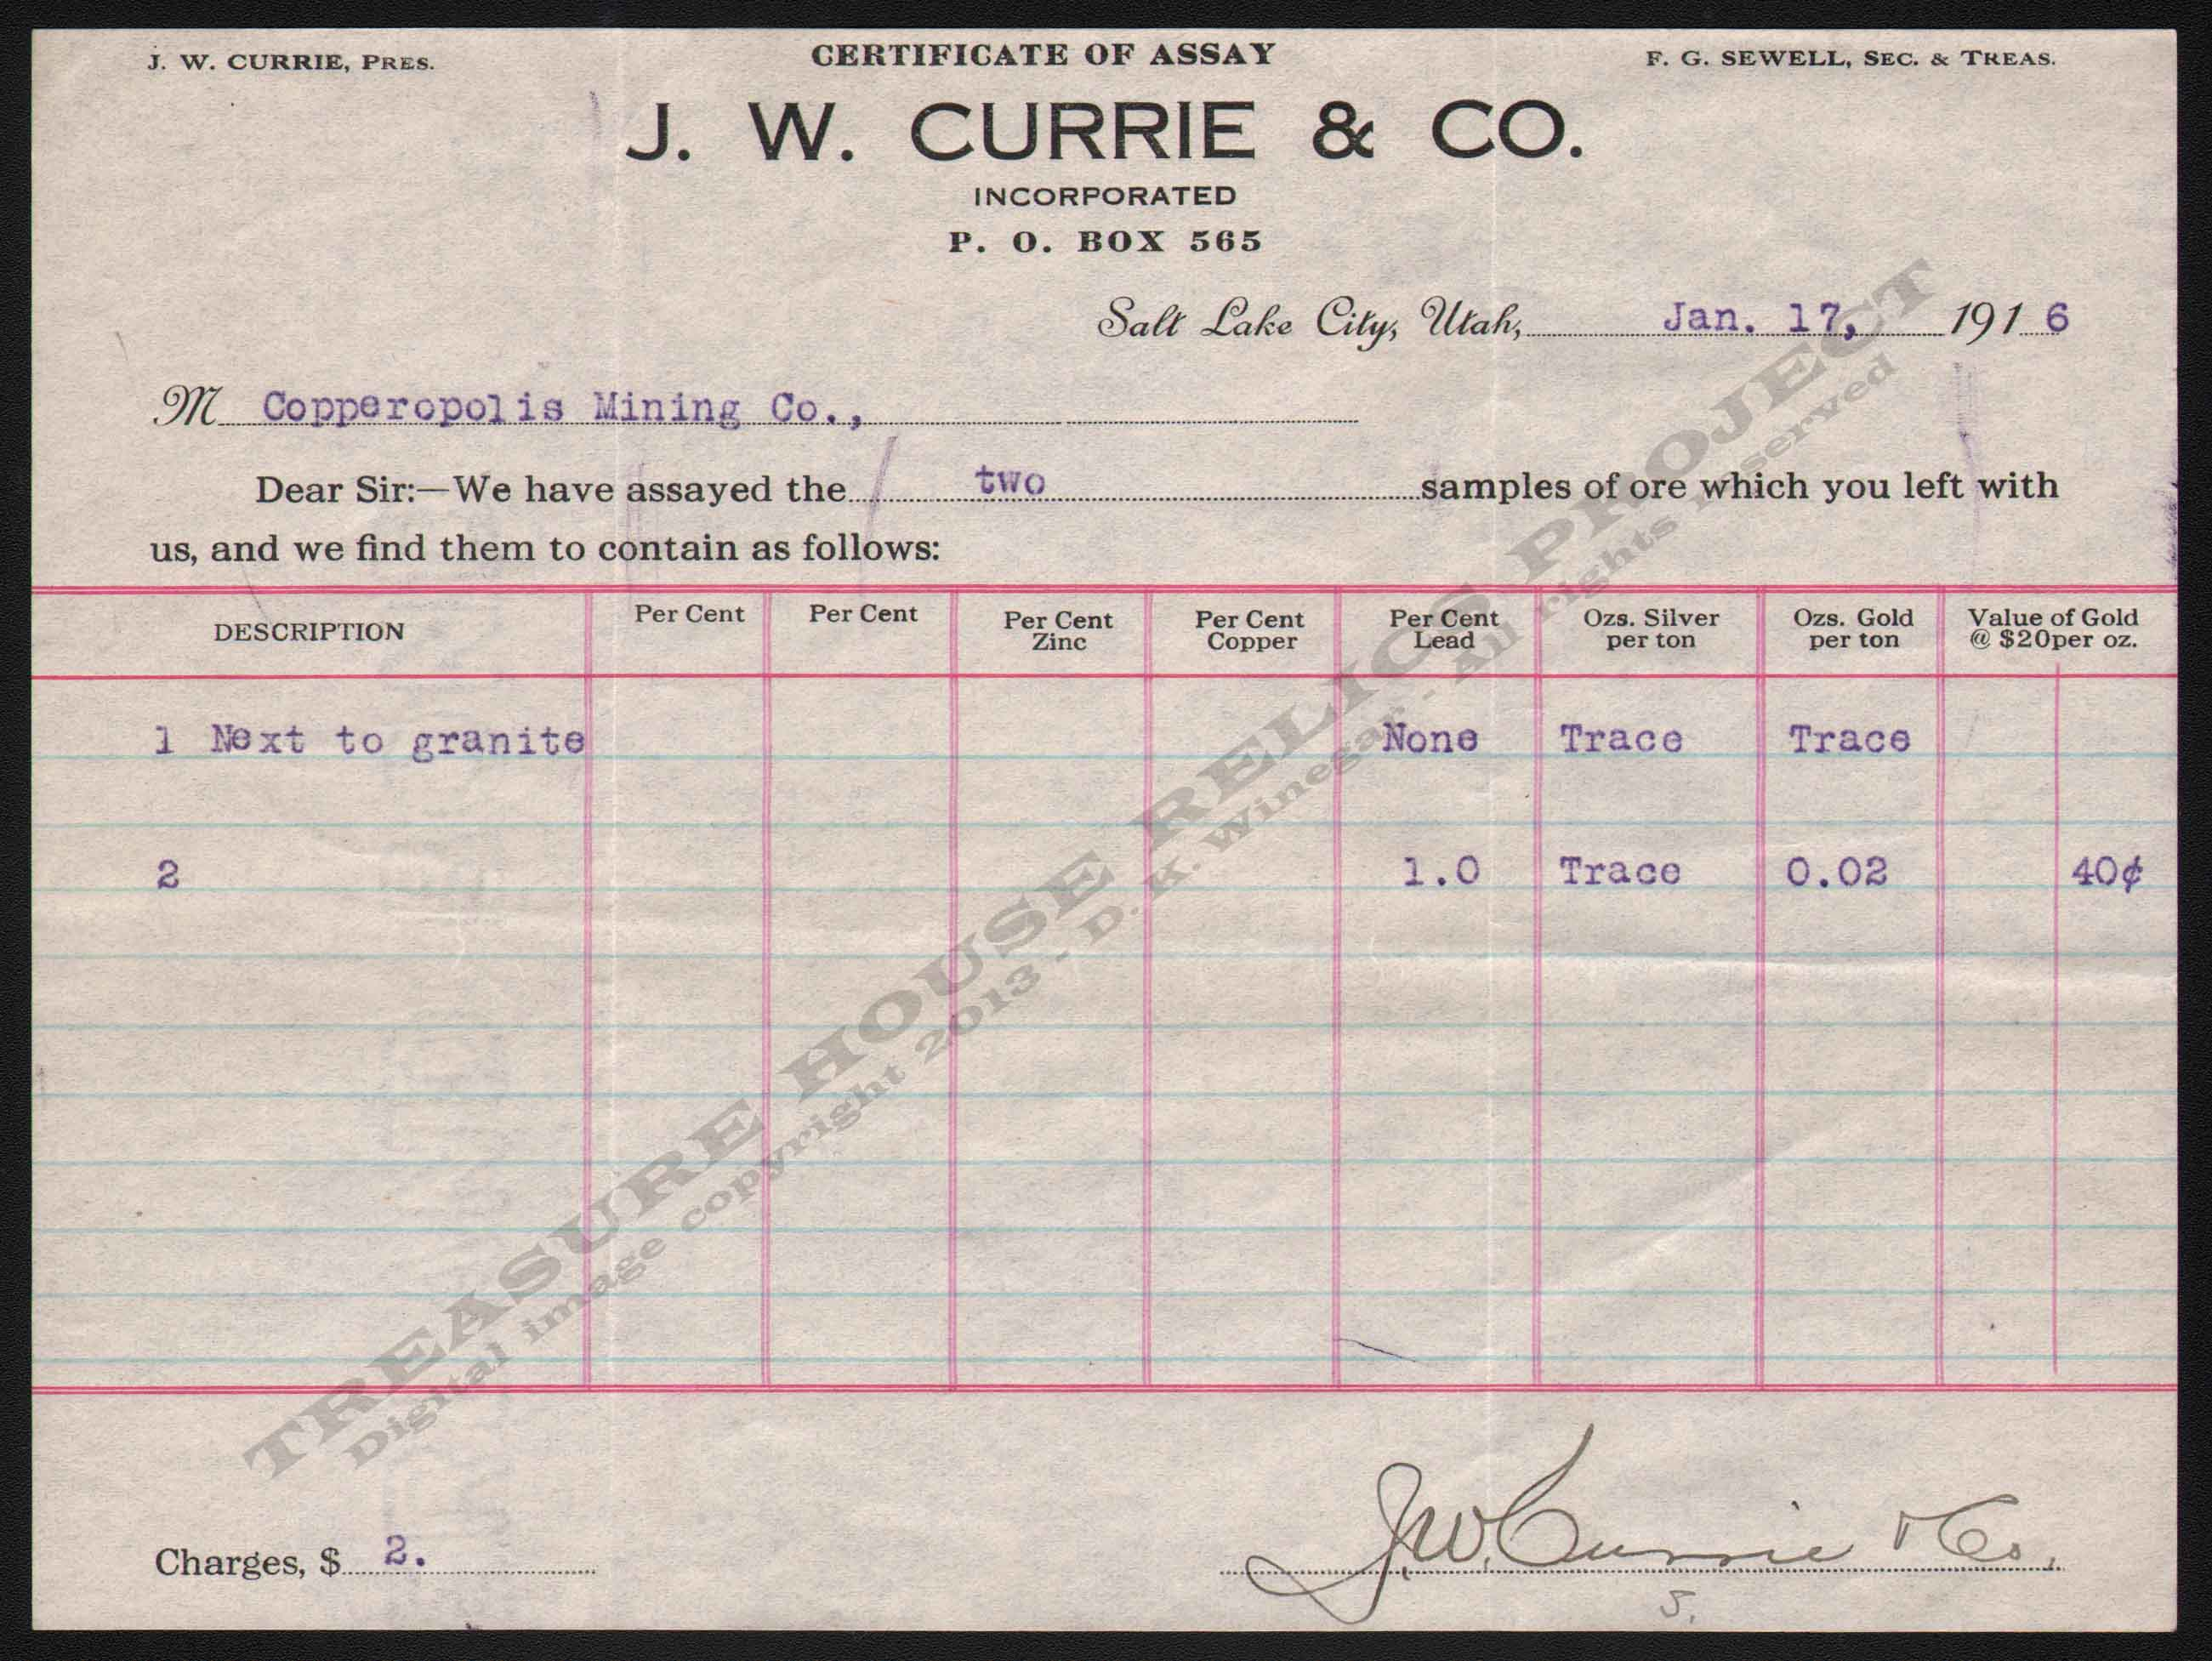 LETTERHEAD/ASSAY_CURRIE_J_W_CO_COPPEROPOLIS_1916_1_17_300_CROP_EMBOSS.jpg